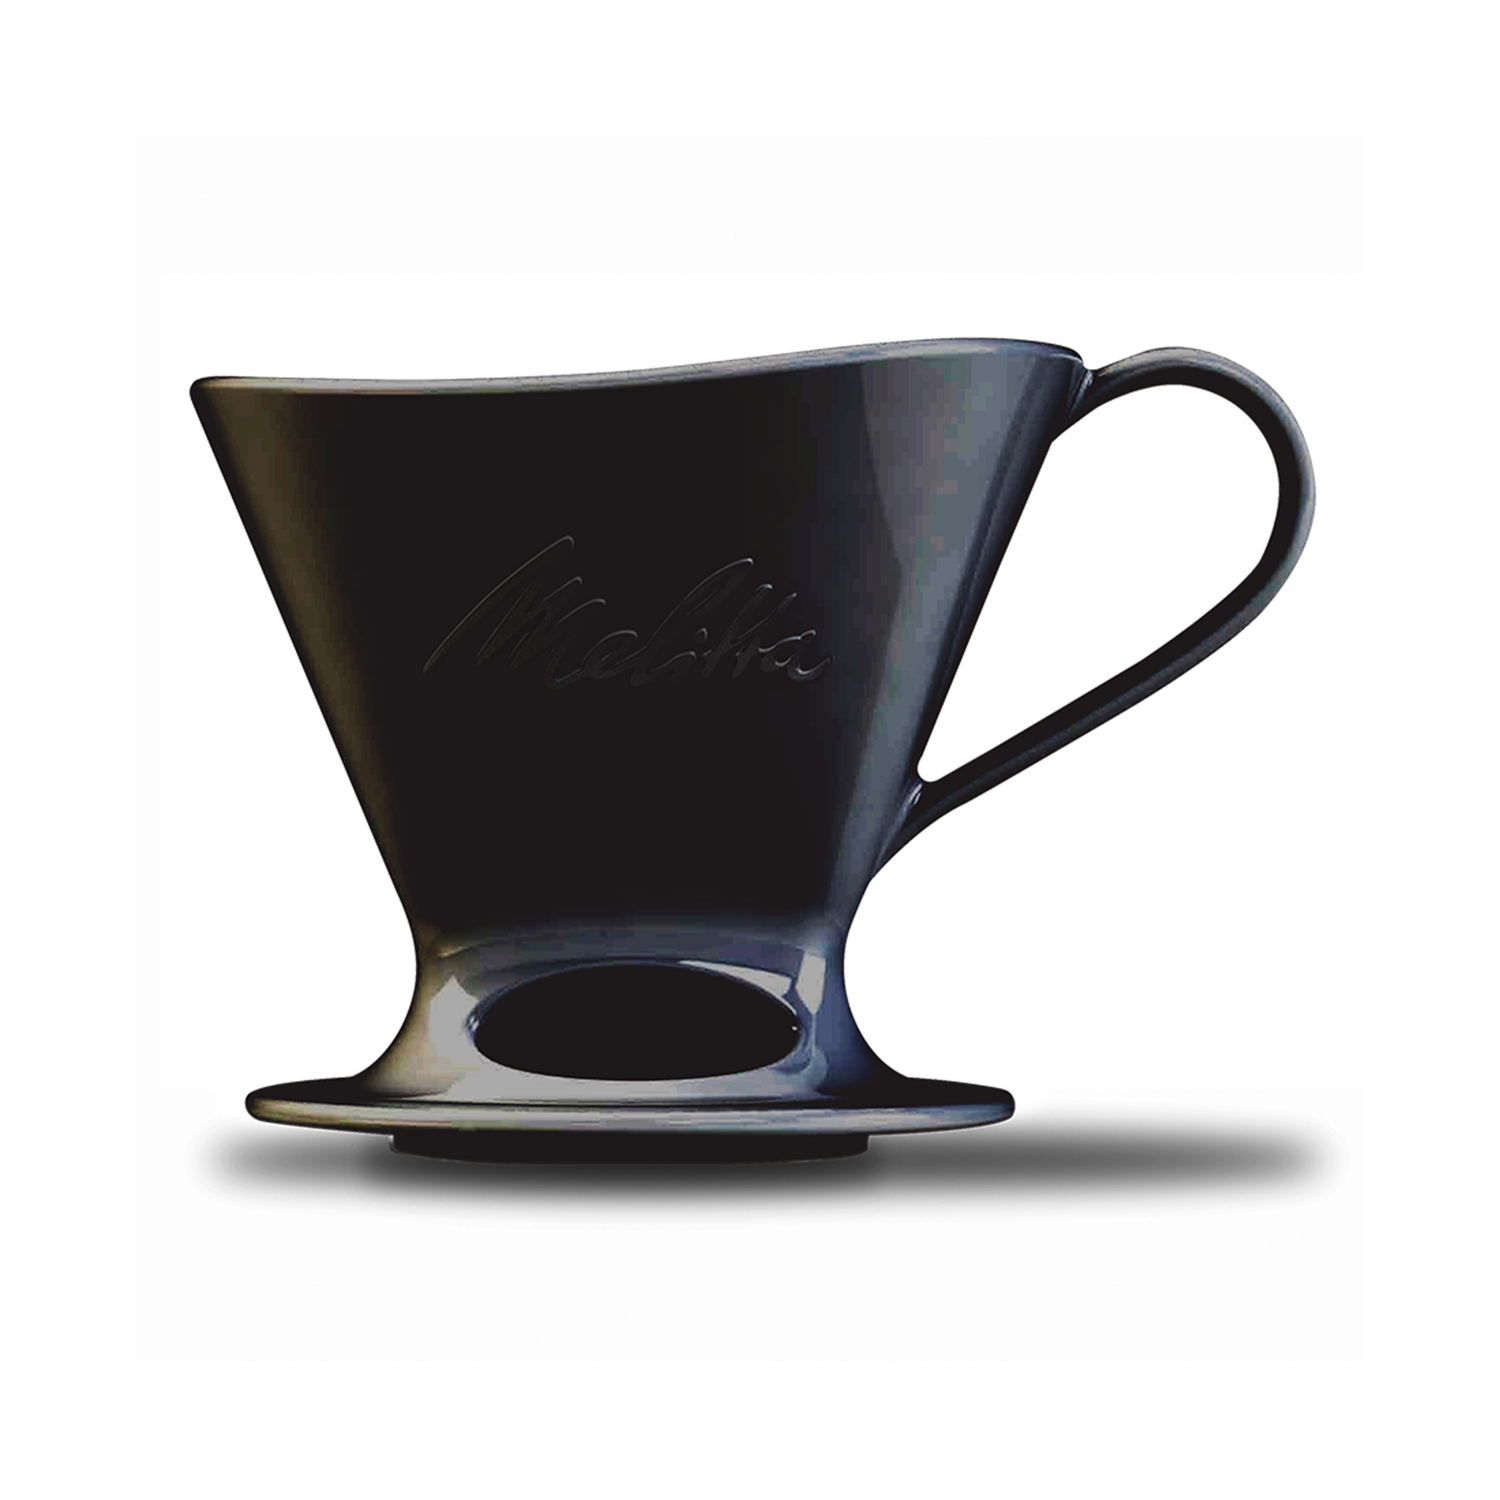 Signature Series Porcelain Pour-Over™ Coffeemaker - Black, 1-Cup